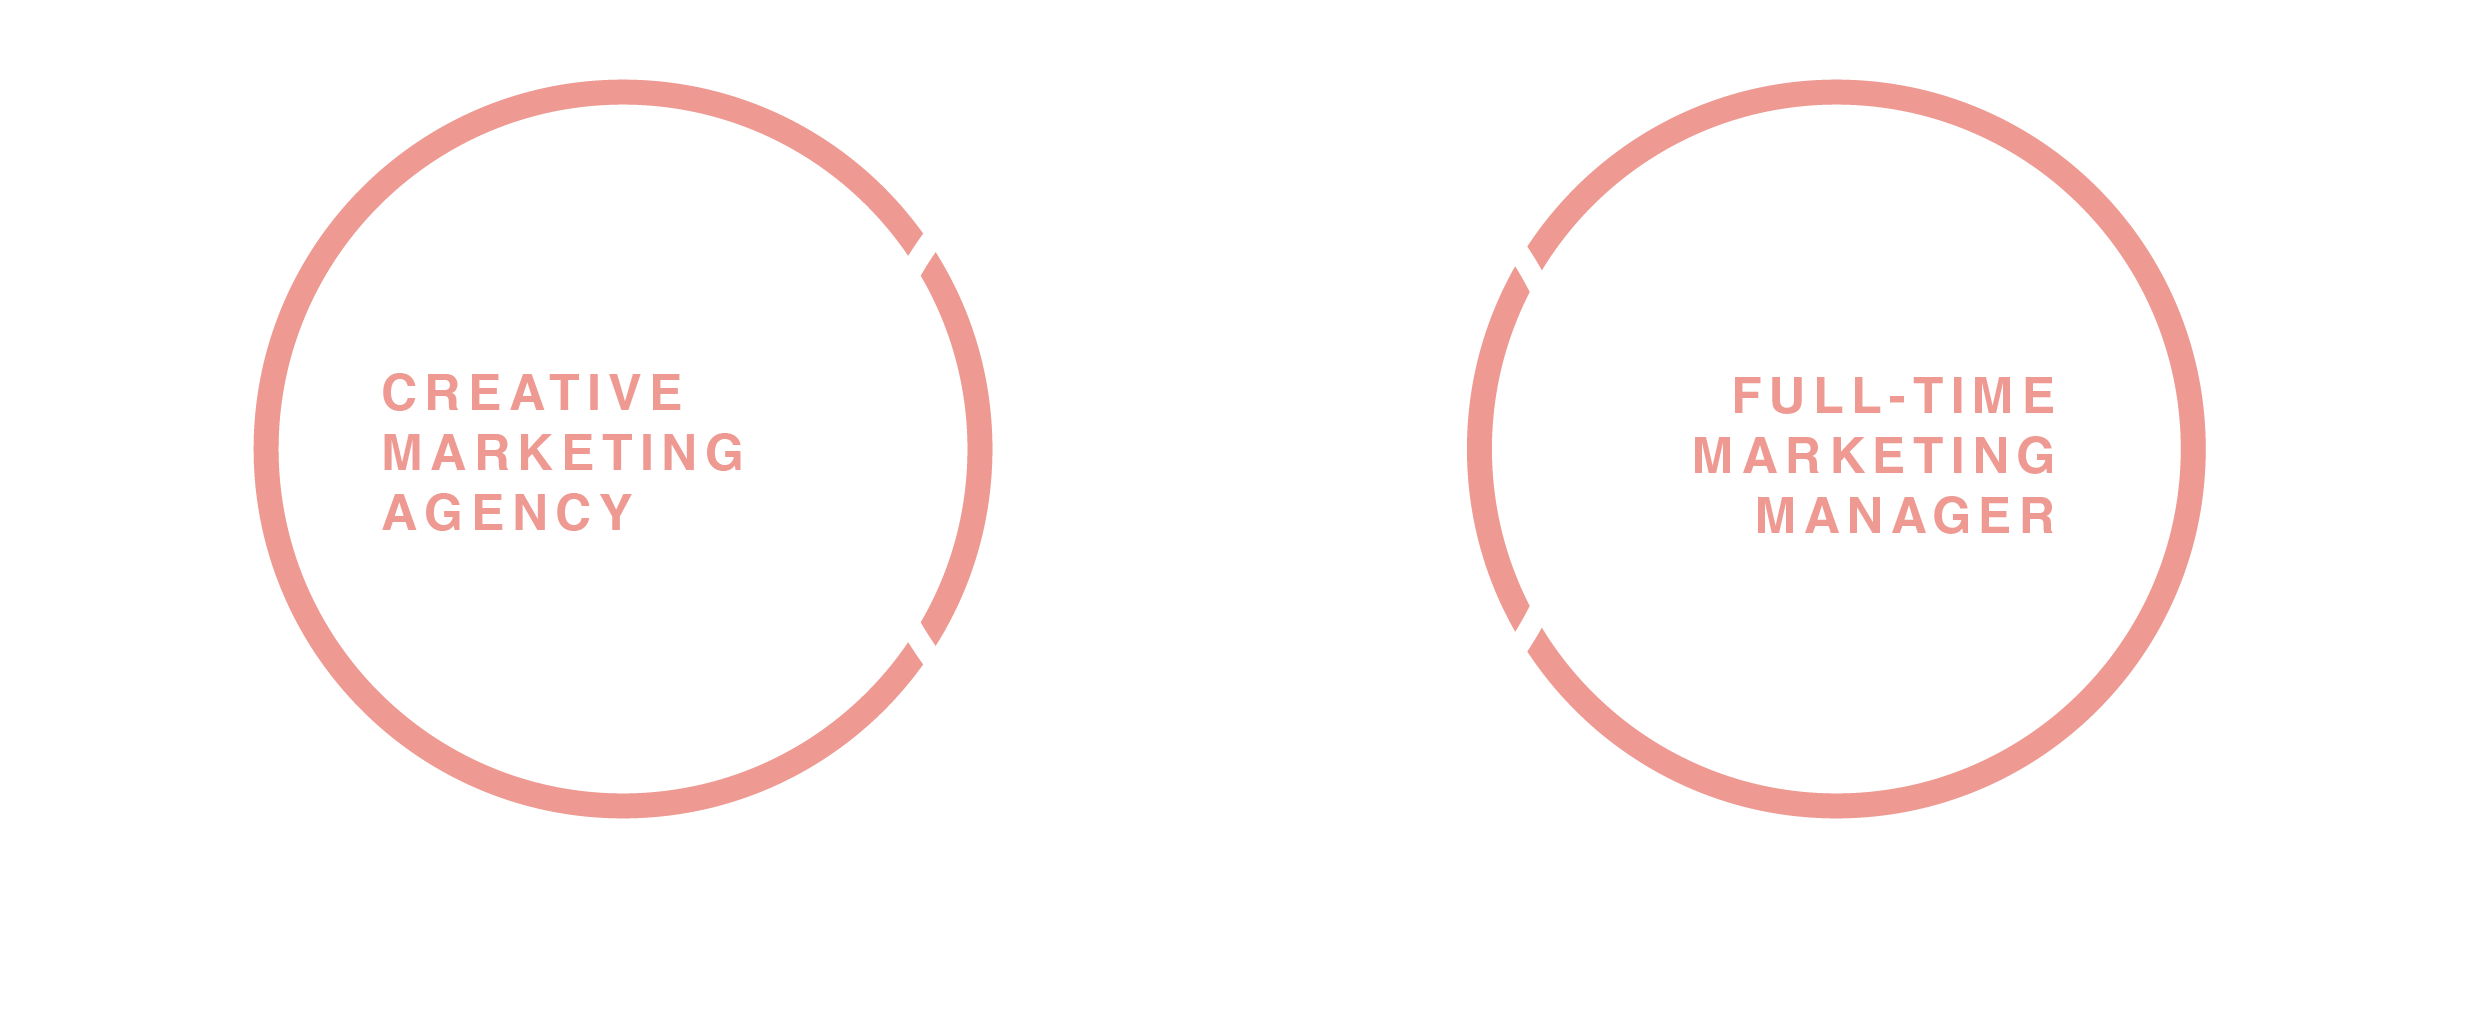 180 Degree Marketing Creative Marketing Agency